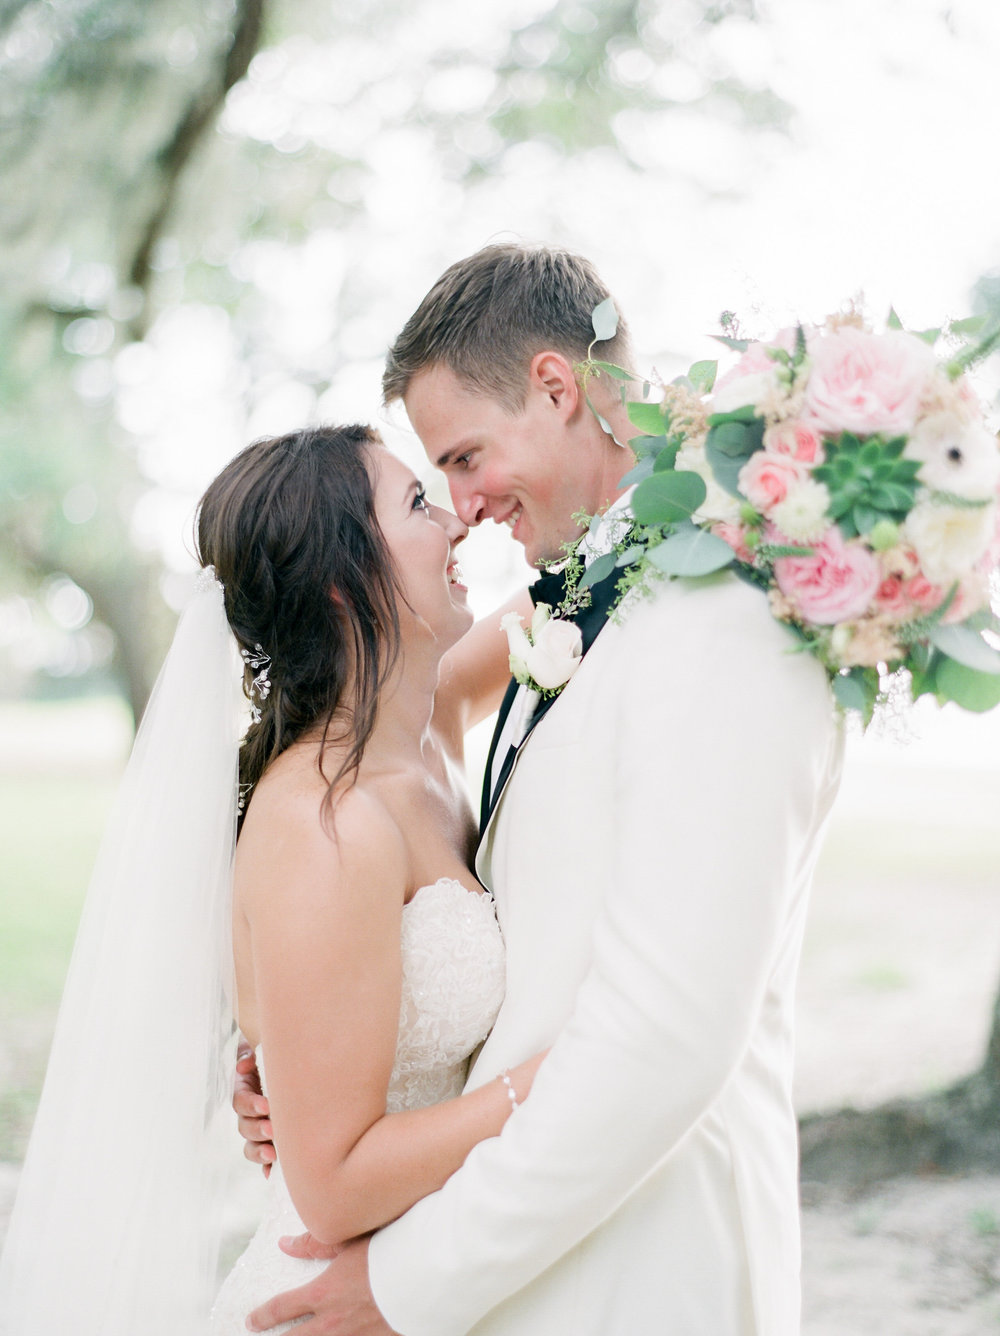 Shawn + Amanda From the bayside getting ready venue to the all night dancing at the Destin Bay house, Shawn and Amanda's day lacked no detail! Their romantic elements, pops of blush pink and flower girl squad made their wedding day simply elegant!